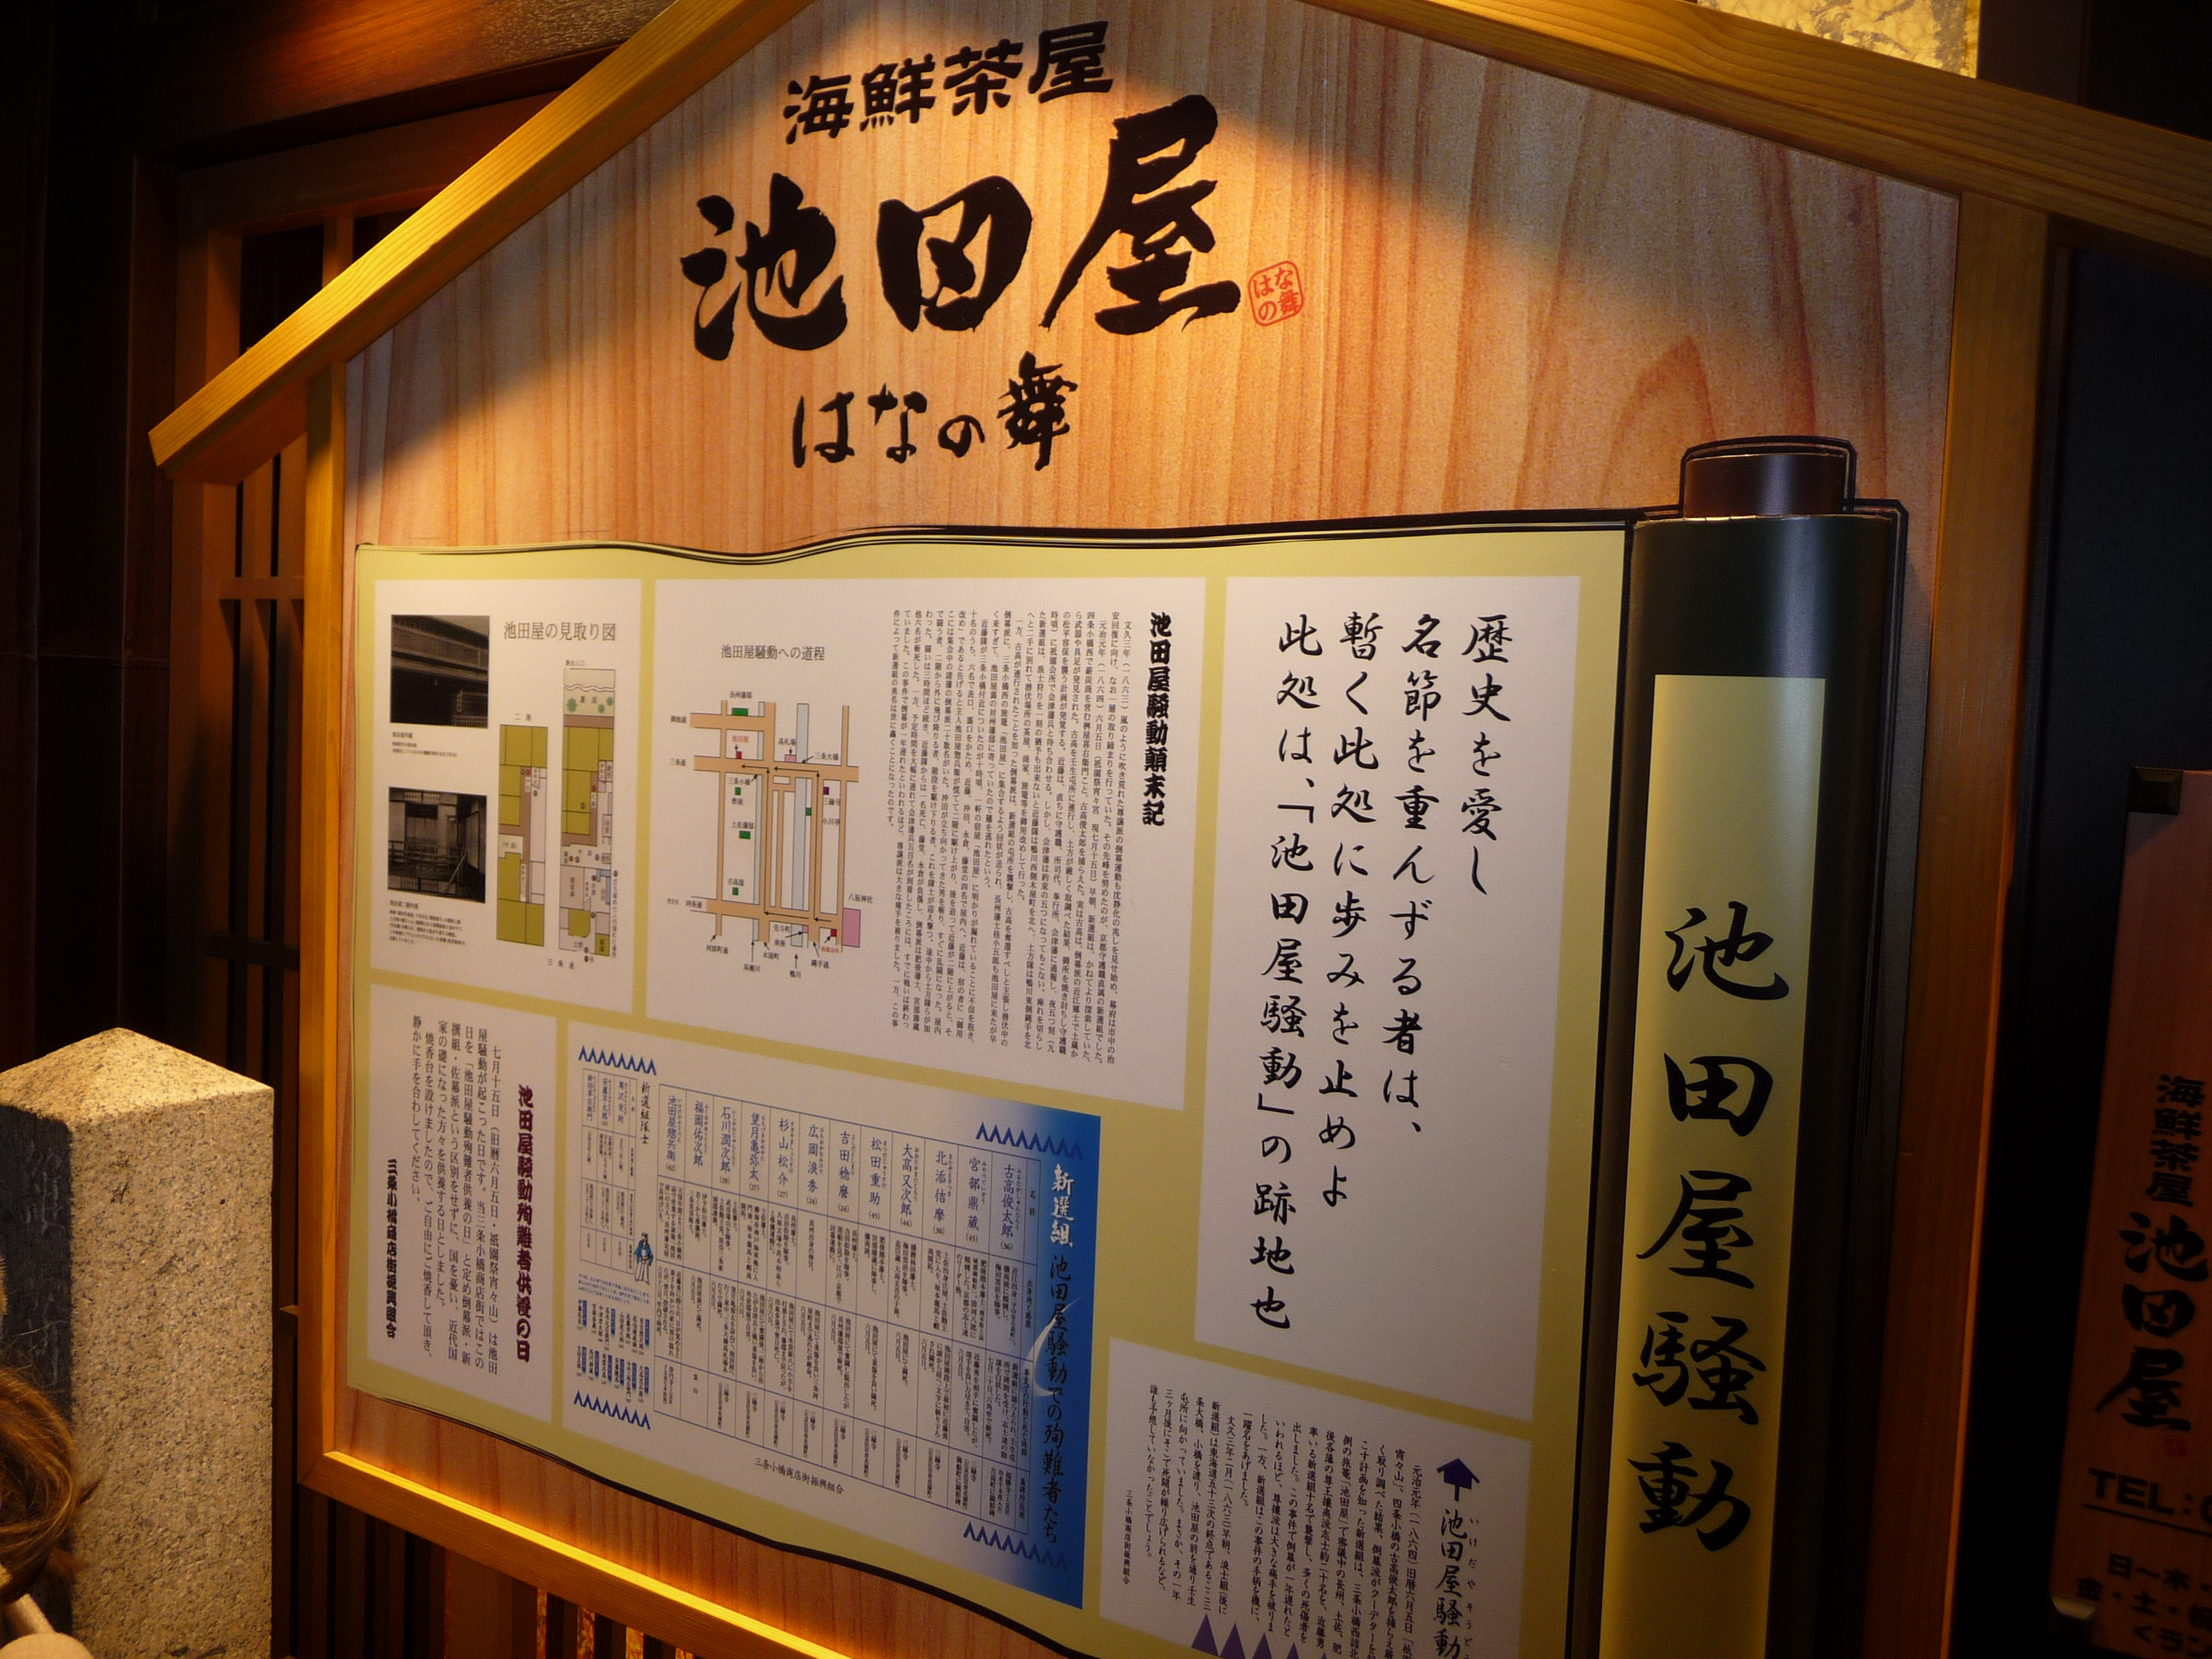 A Shinsengumi historic place